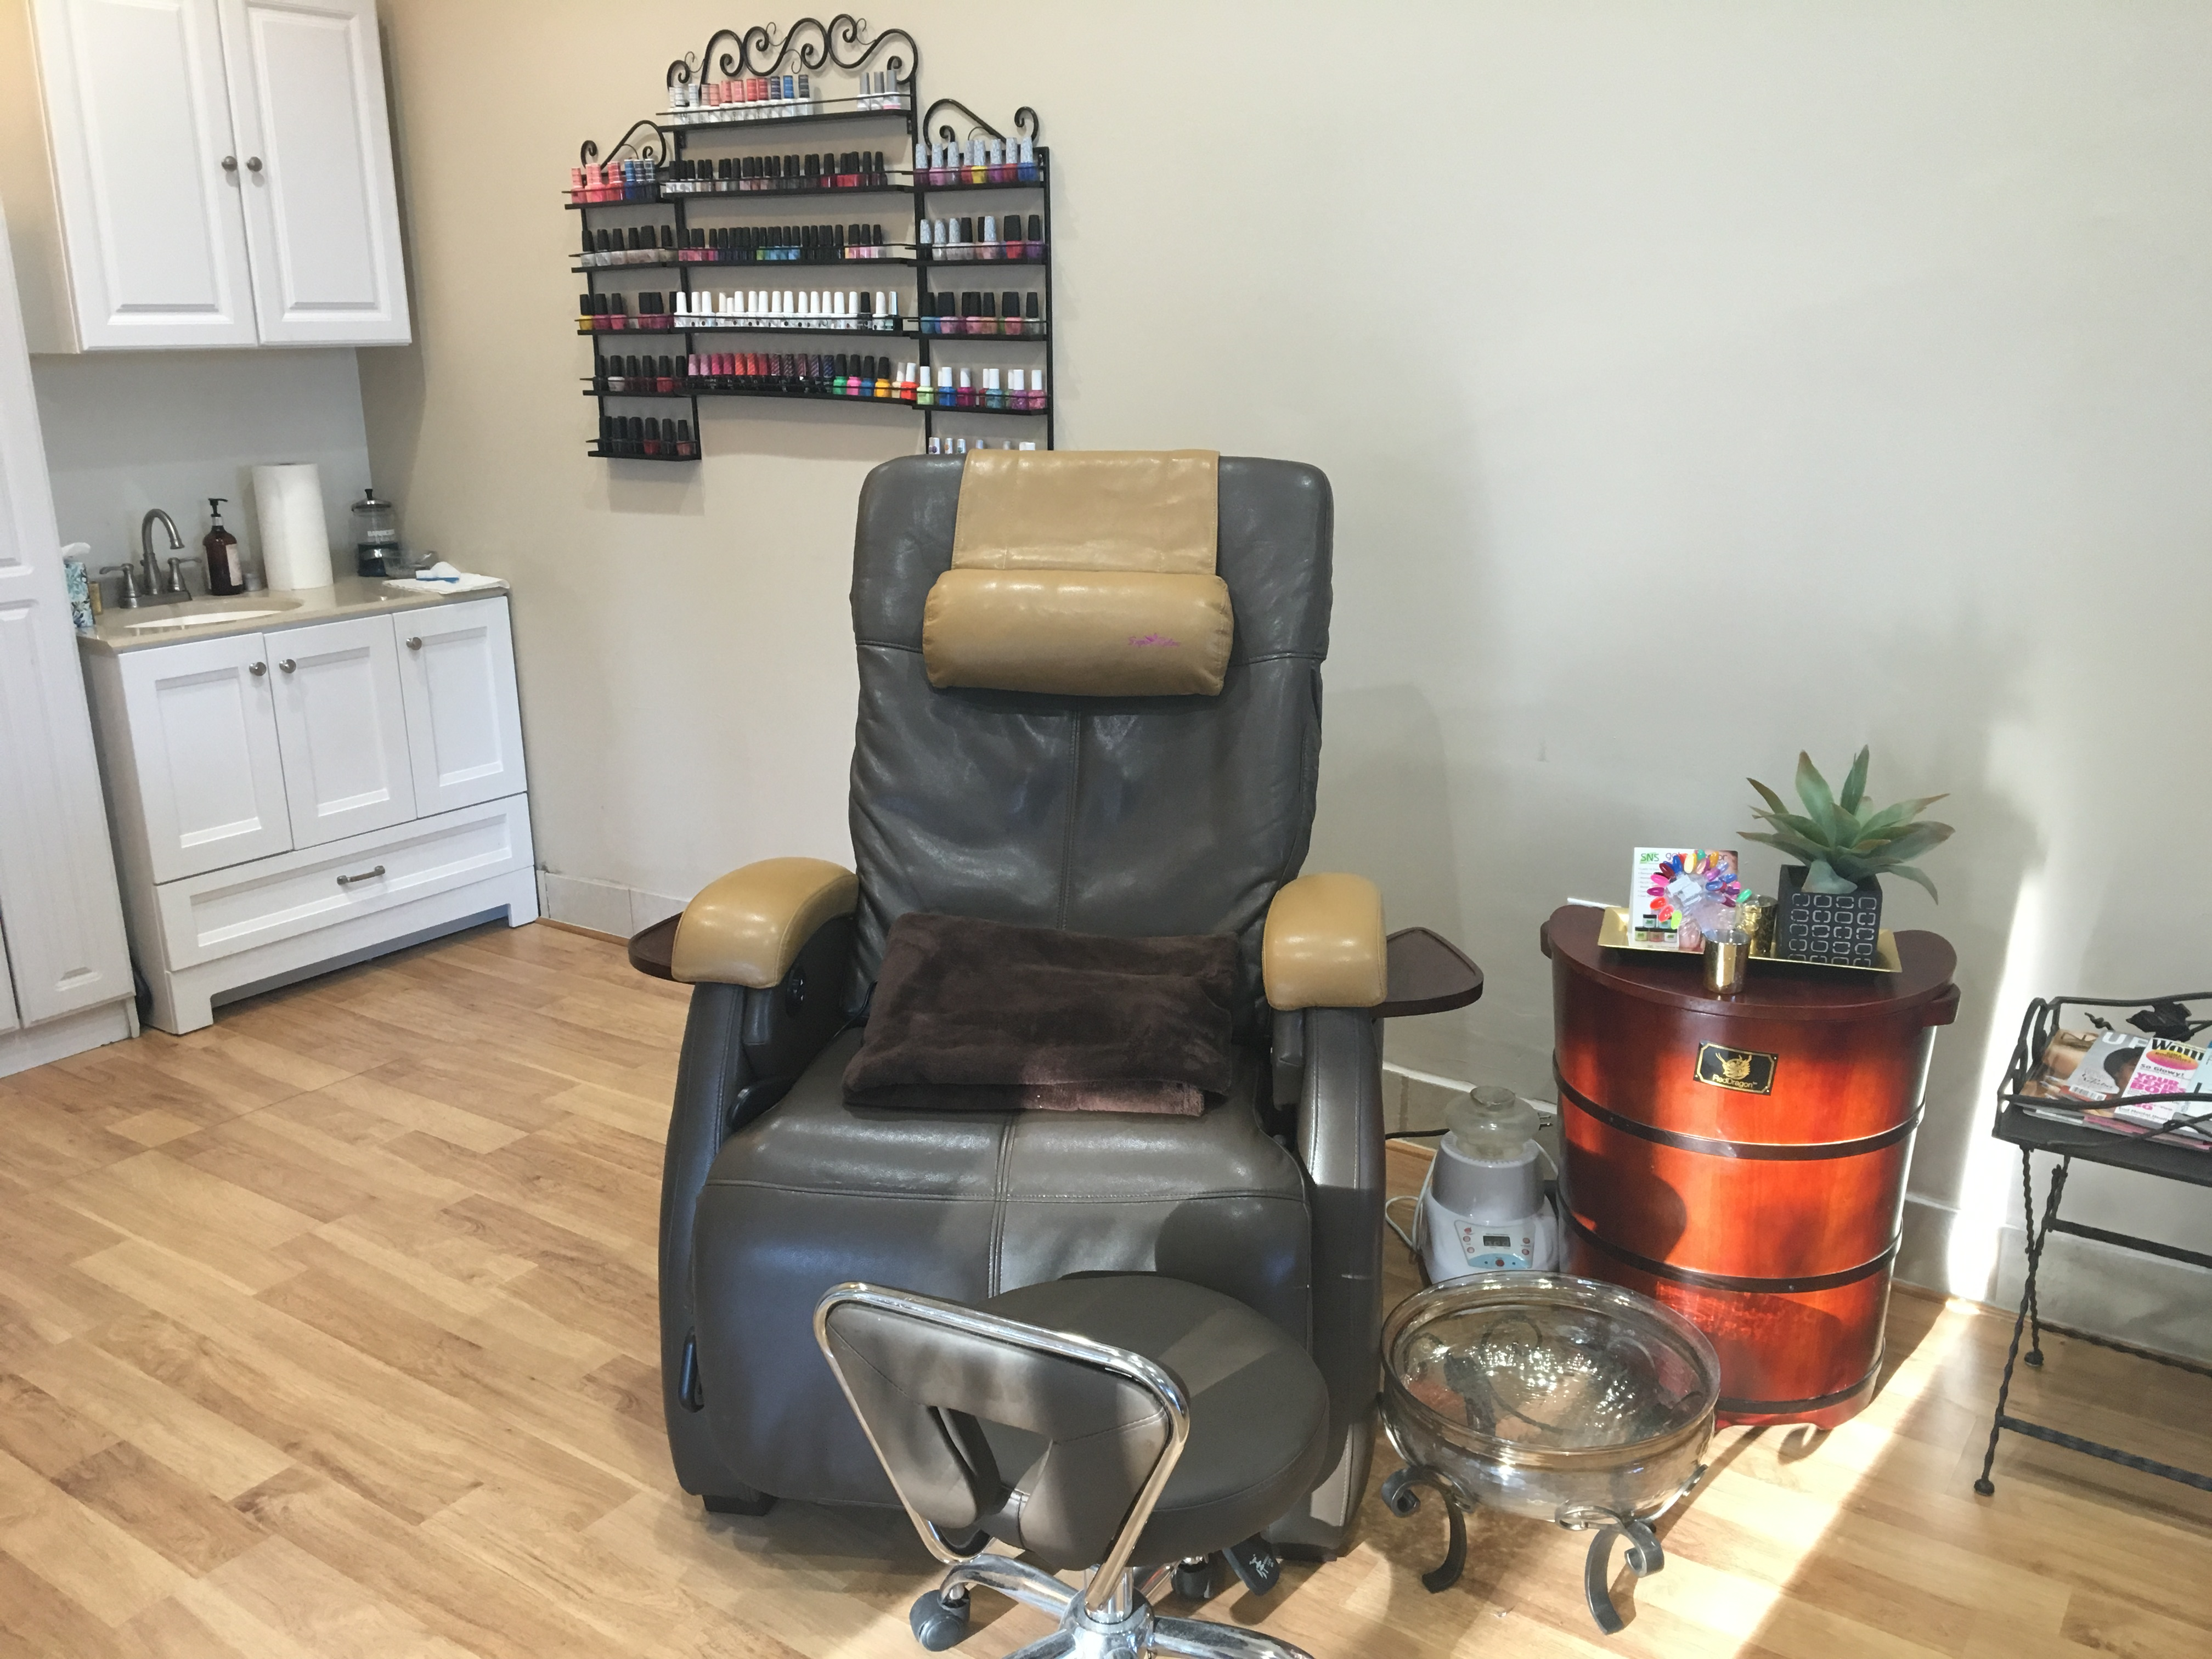 top rated pedicure chairs ergonomic chair attachment the waterless zero gravity steam hair salon nail day spa in fairfax for 15 years